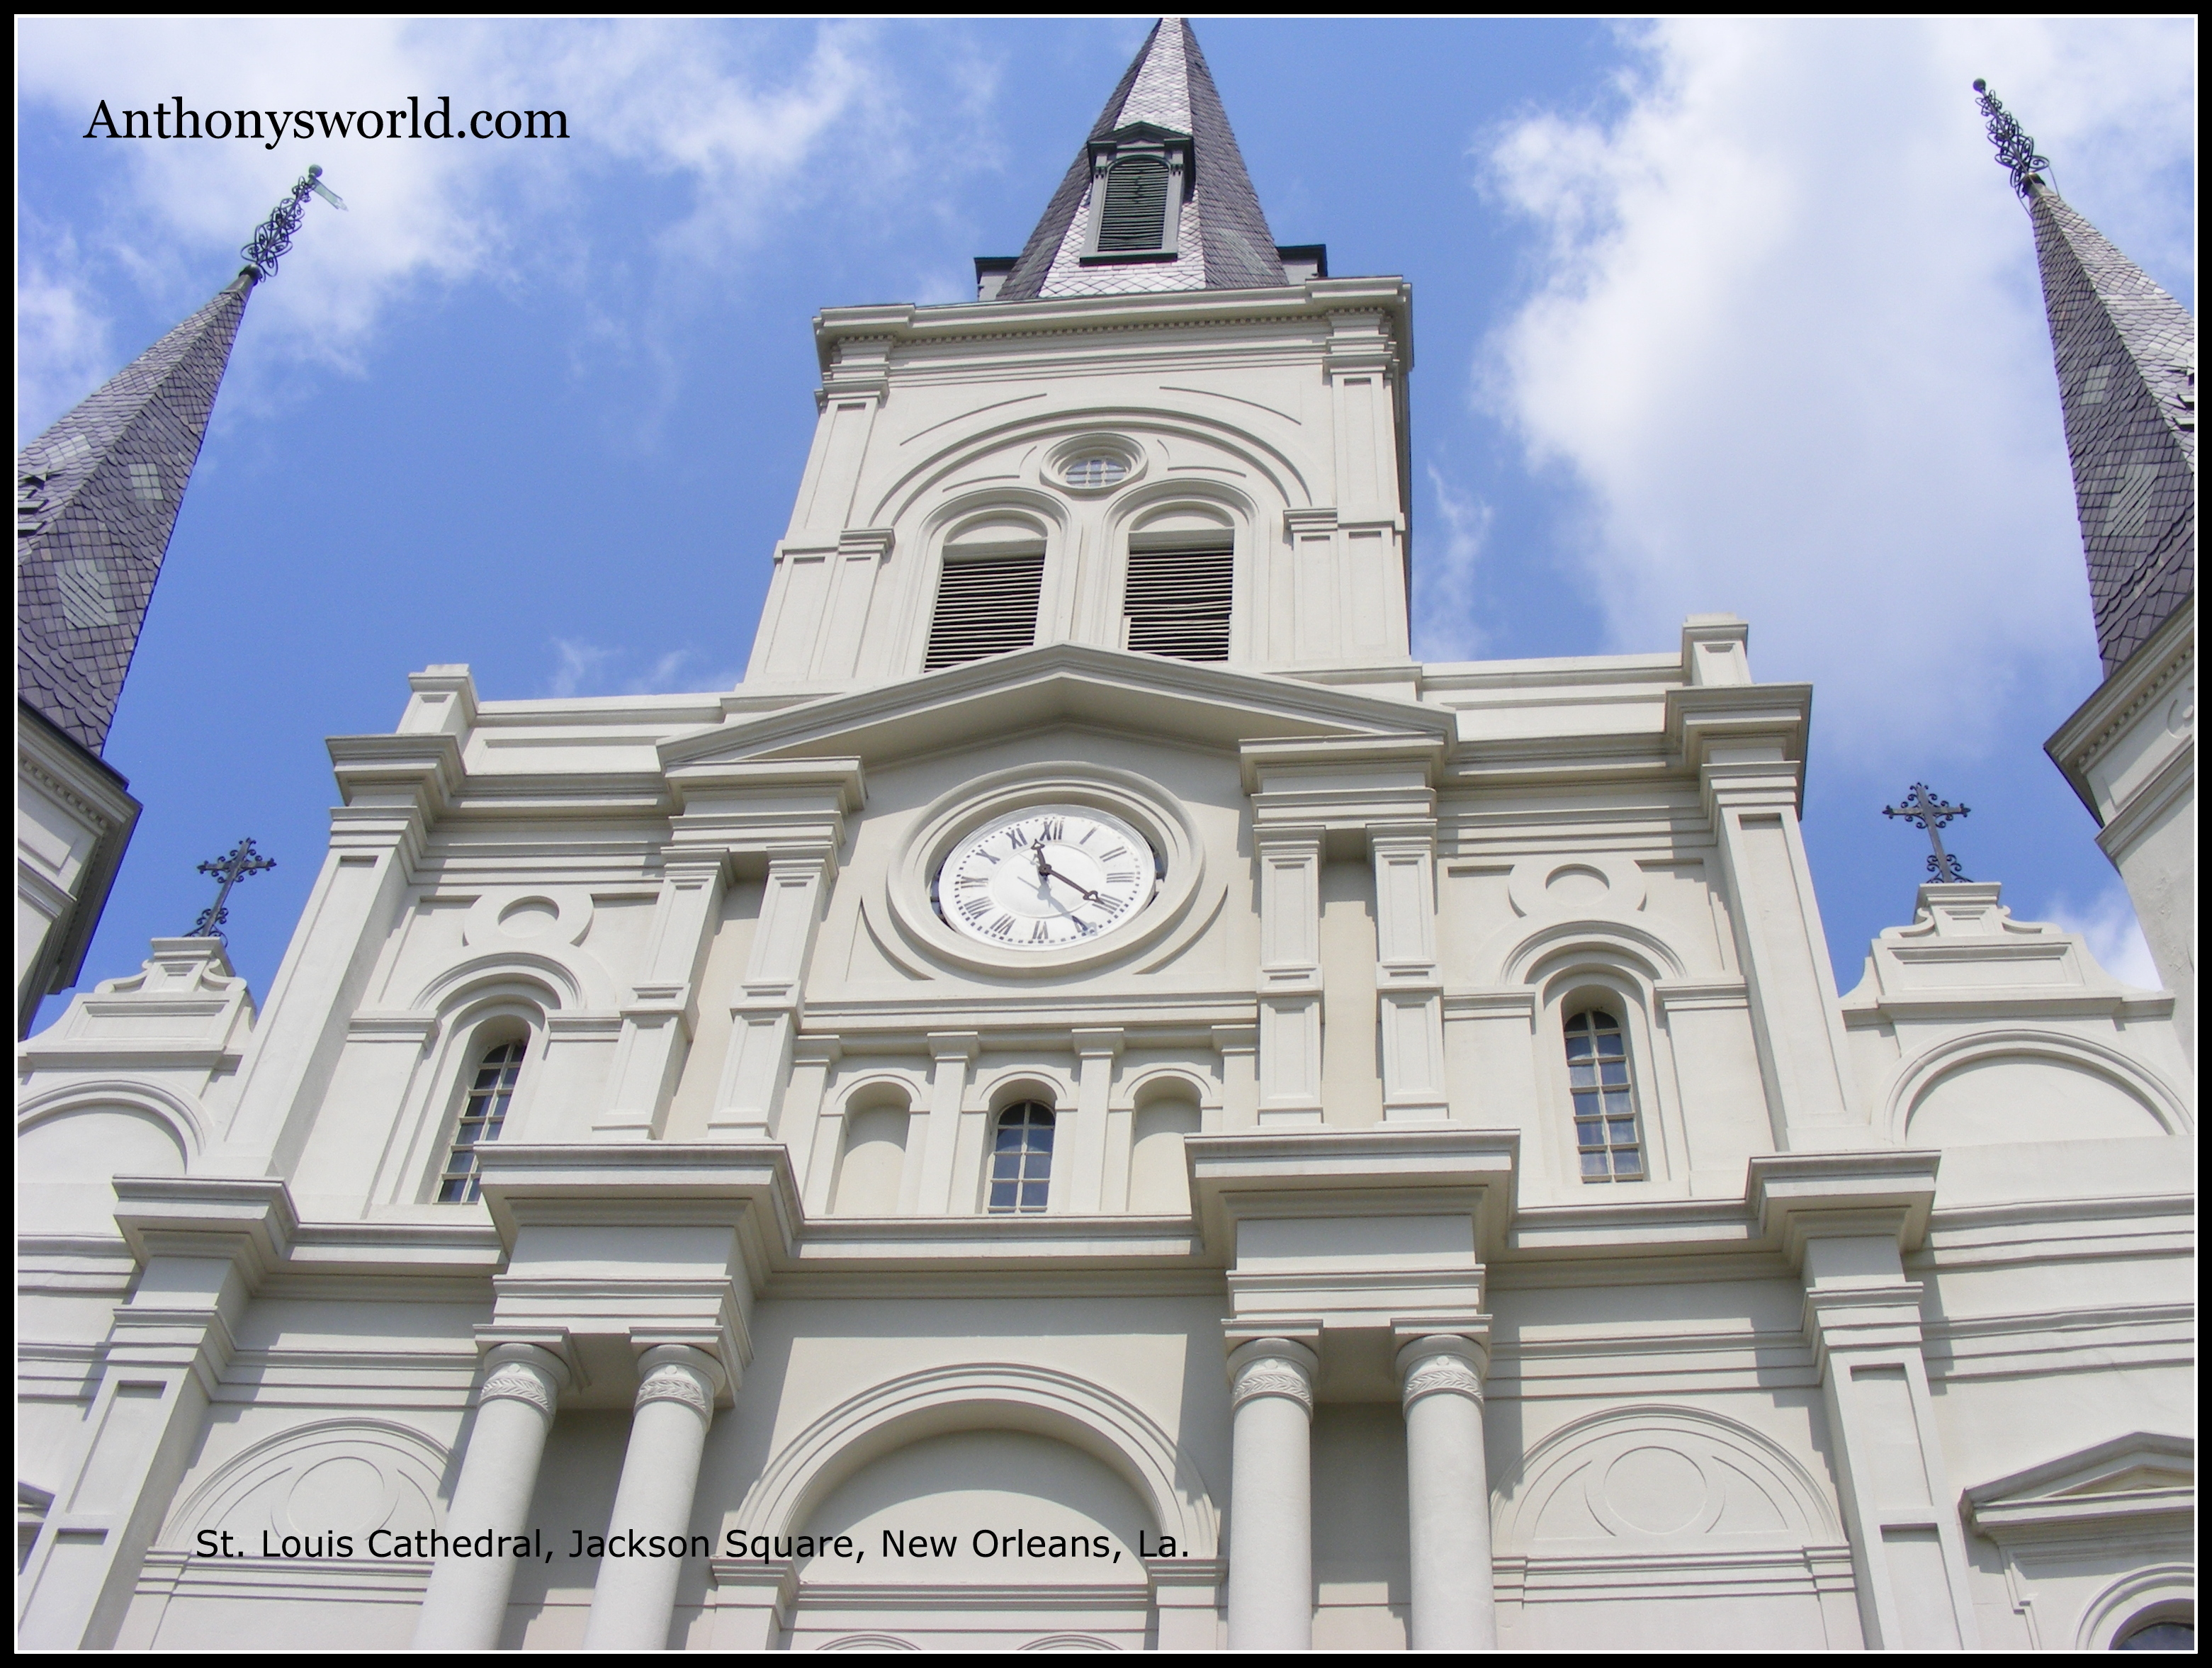 St. Louis Cathedral in Jackson Square, New Orleans.